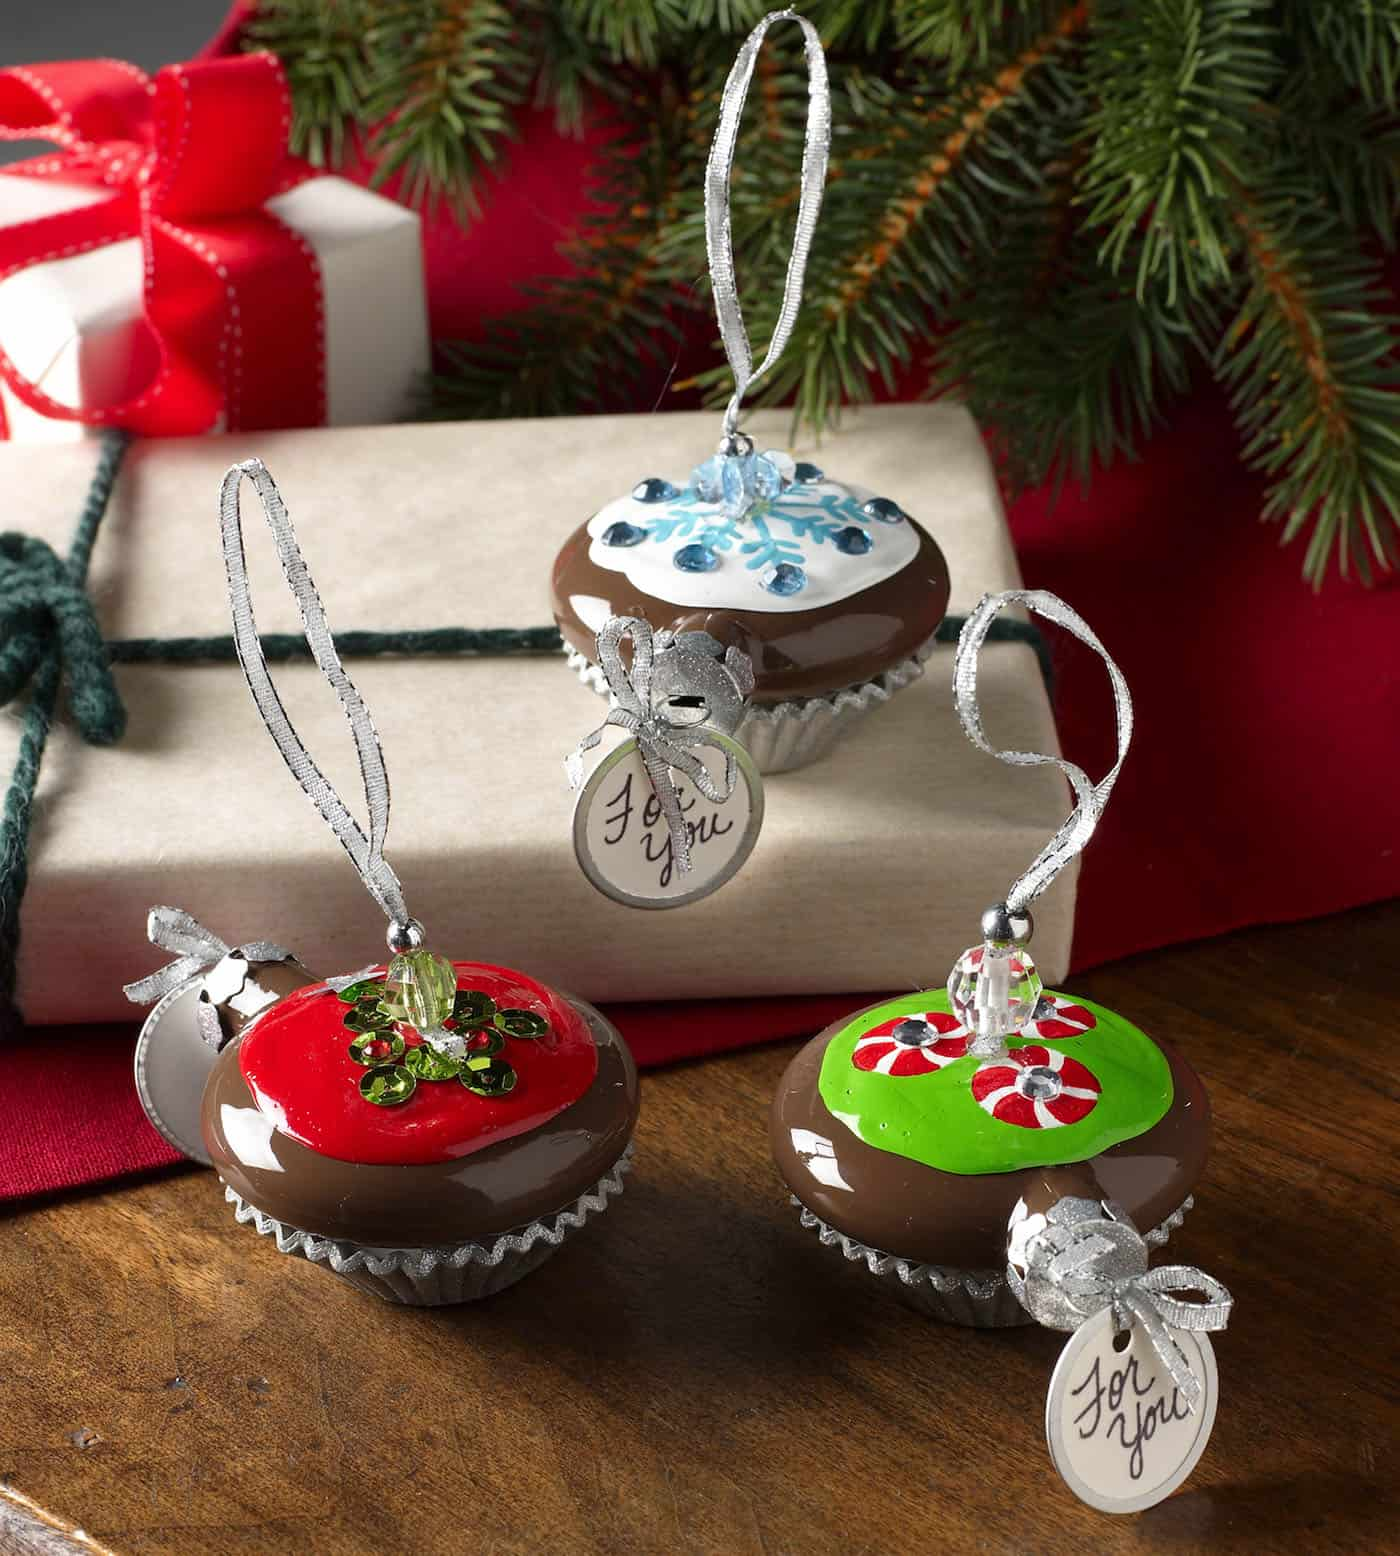 Handmade glass christmas ornaments - These Handmade Christmas Ornaments Are Regular Ornaments Painted To Look Just Like Cupcakes Have You